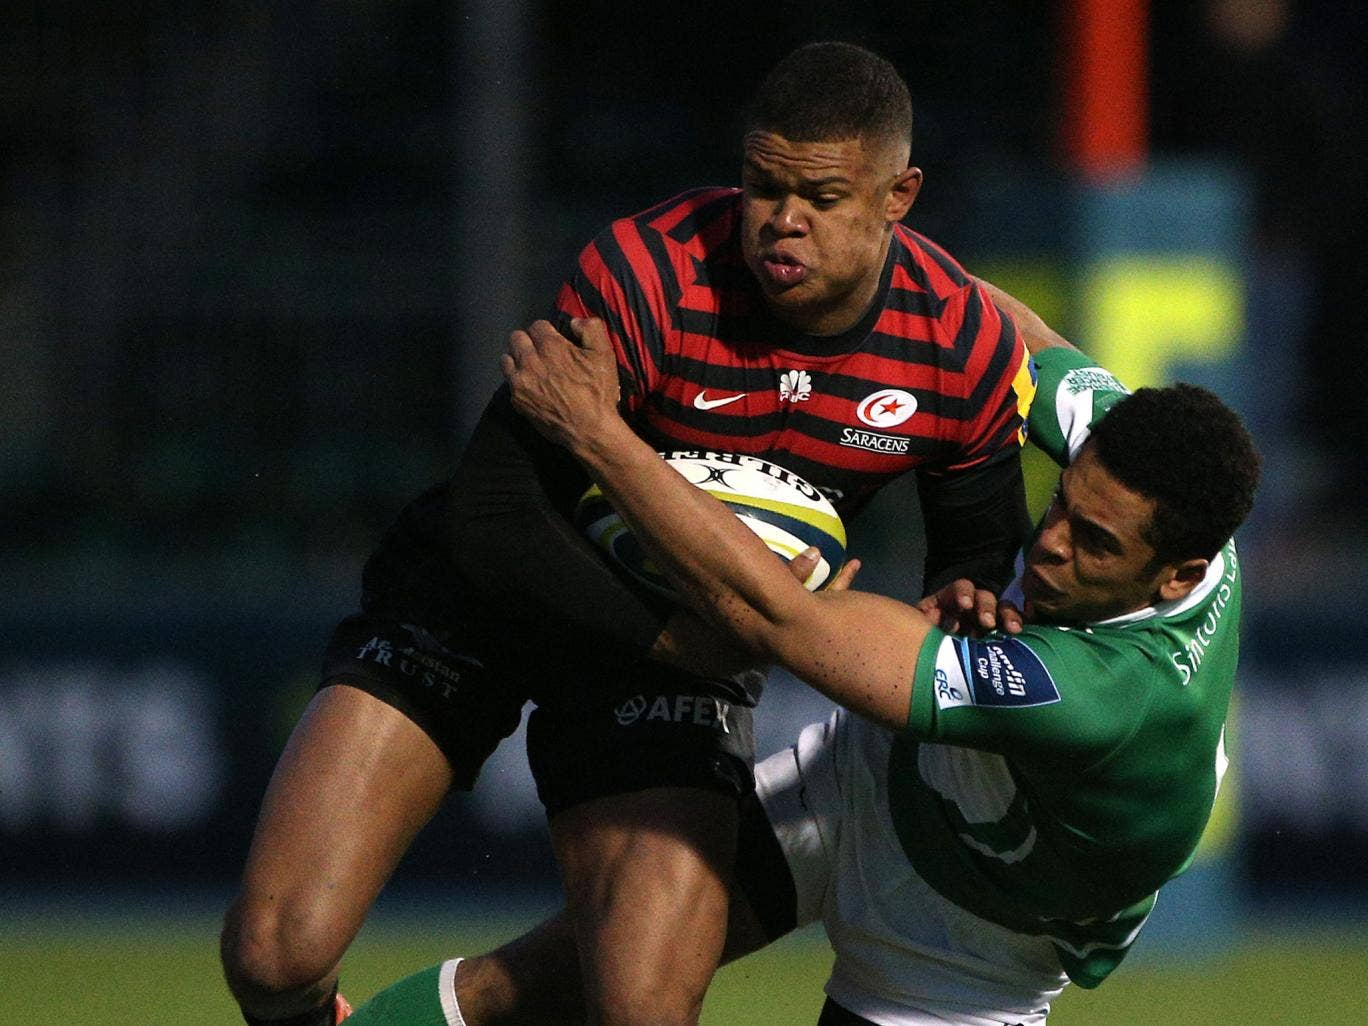 Saracens' Nathan Earle is held by Zach Kibirige during the game on Sunday